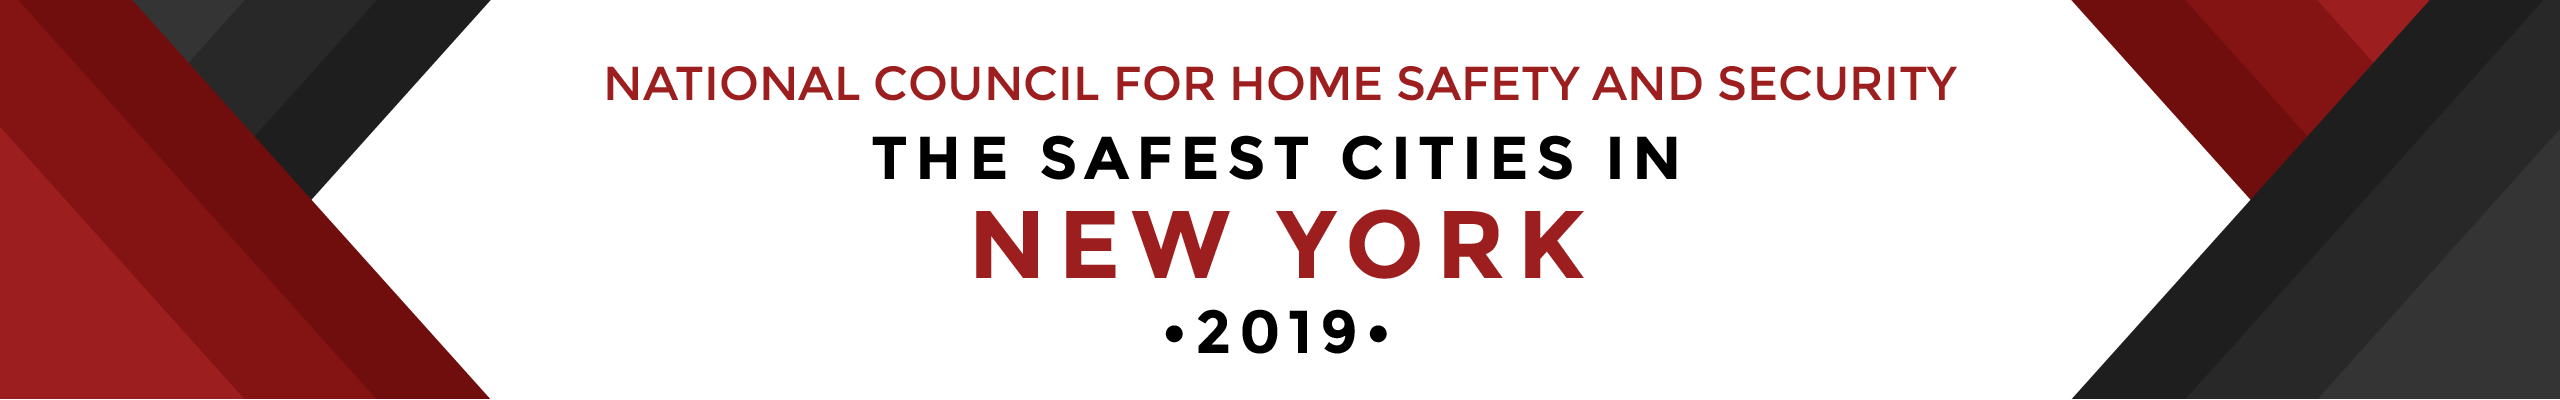 Safest Cities New York- header